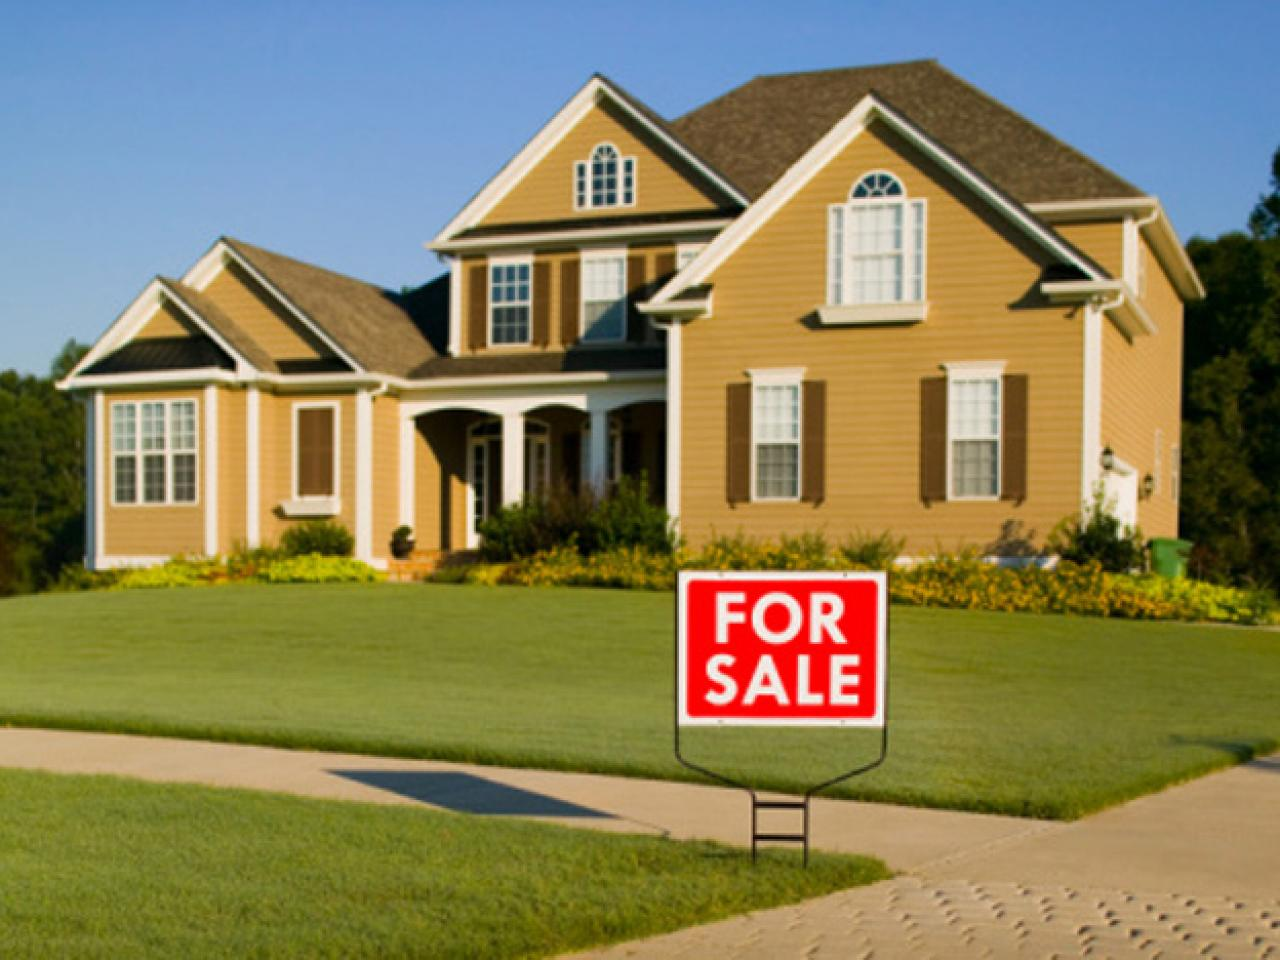 10 Tips for Buying a House